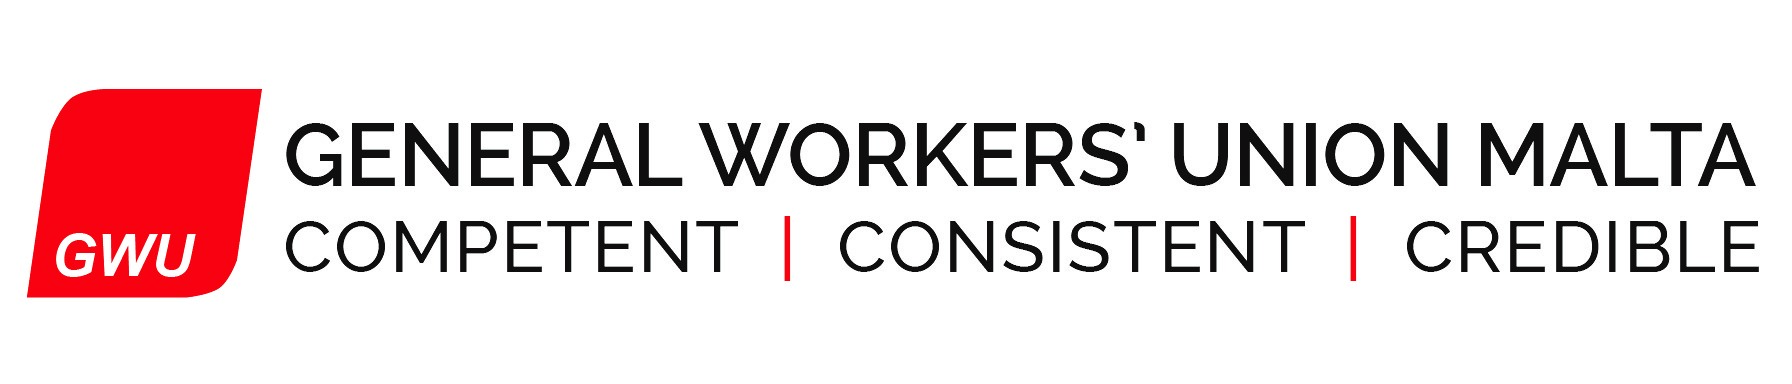 General Workers Union Malta